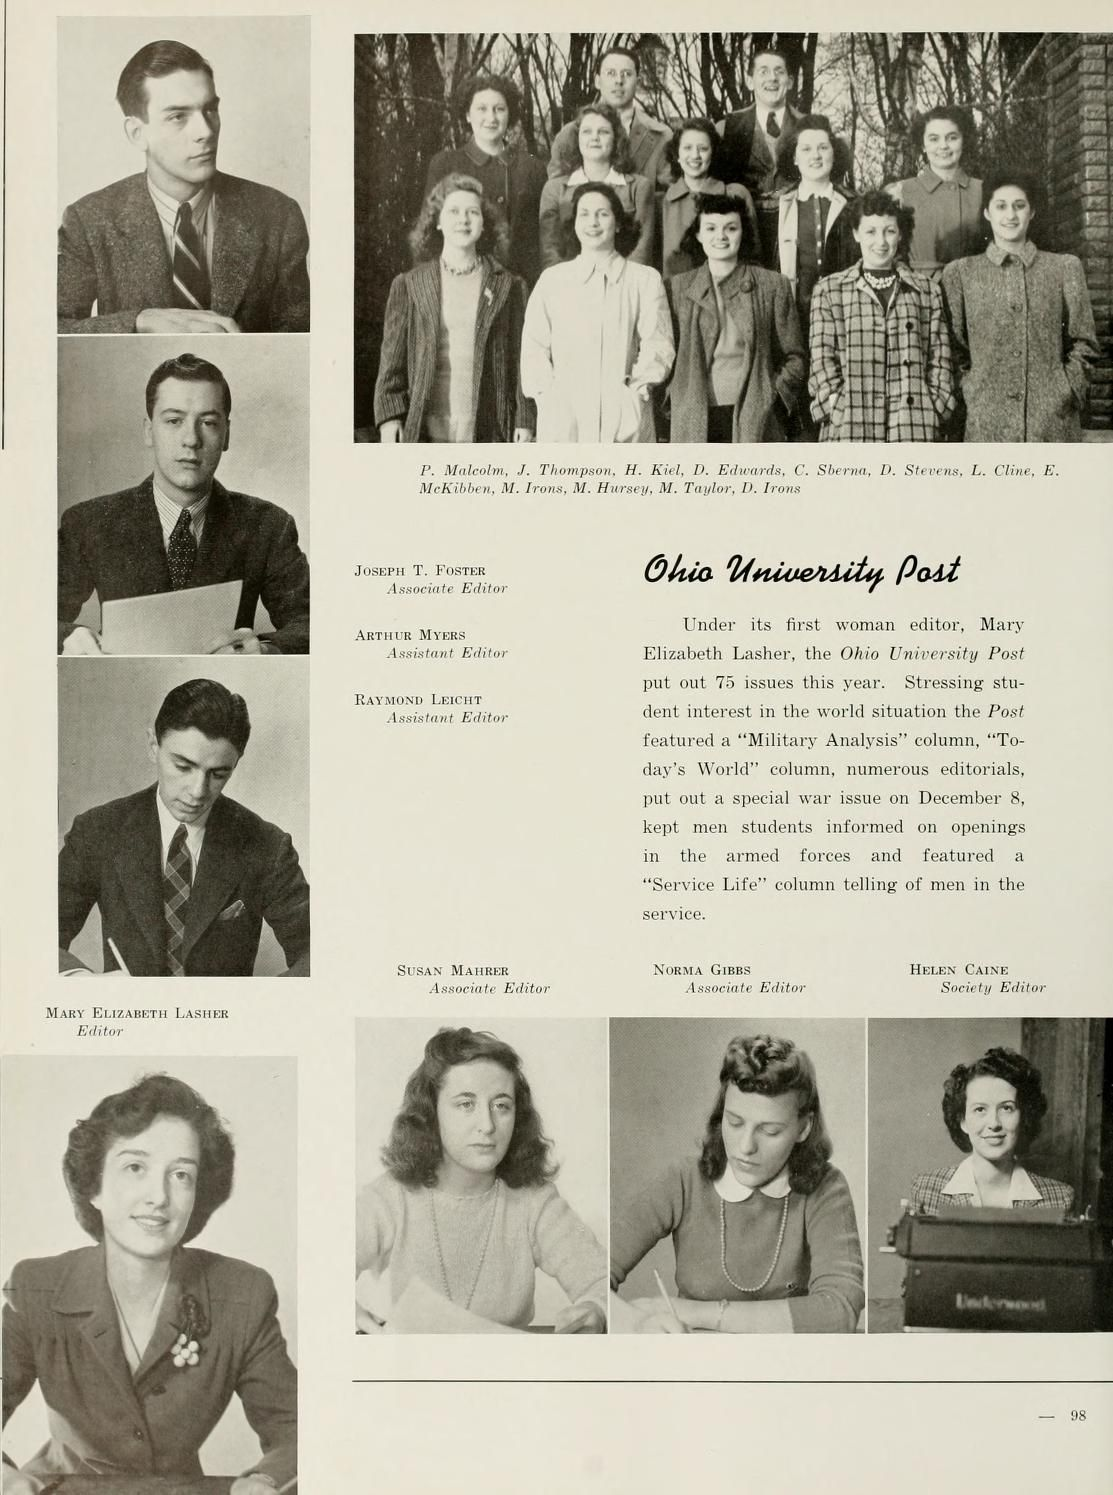 Athena yearbook, 1942  In 1941 Mary Elizabeth Lasher became